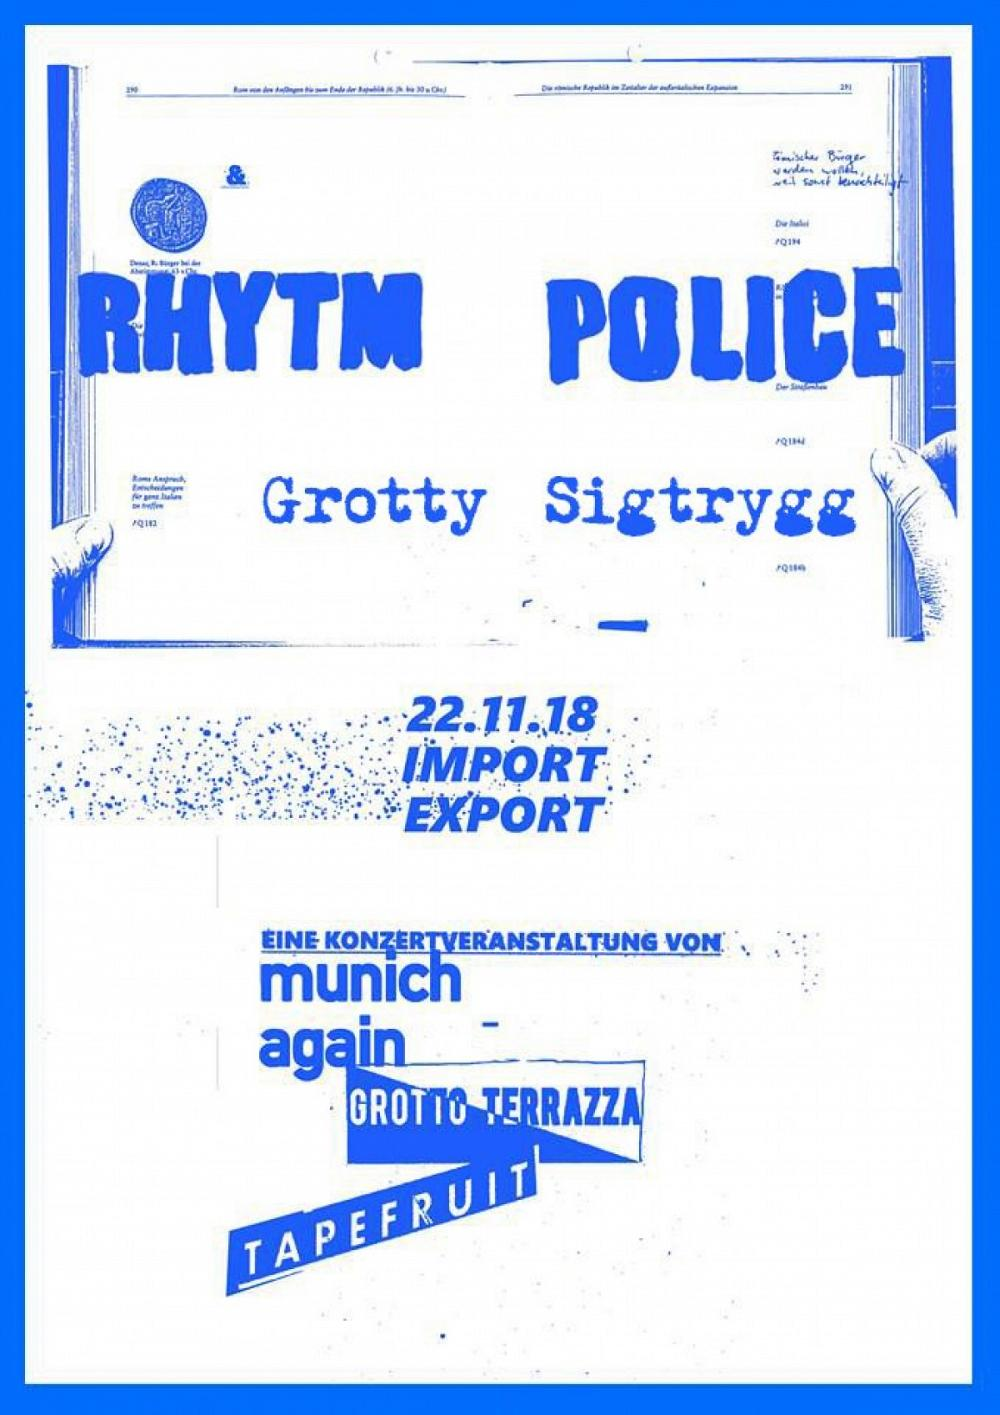 Tapefruit Konzert: Rhytm Police + Grotty Sigtrygg | 22.11.2018 @ Import Export